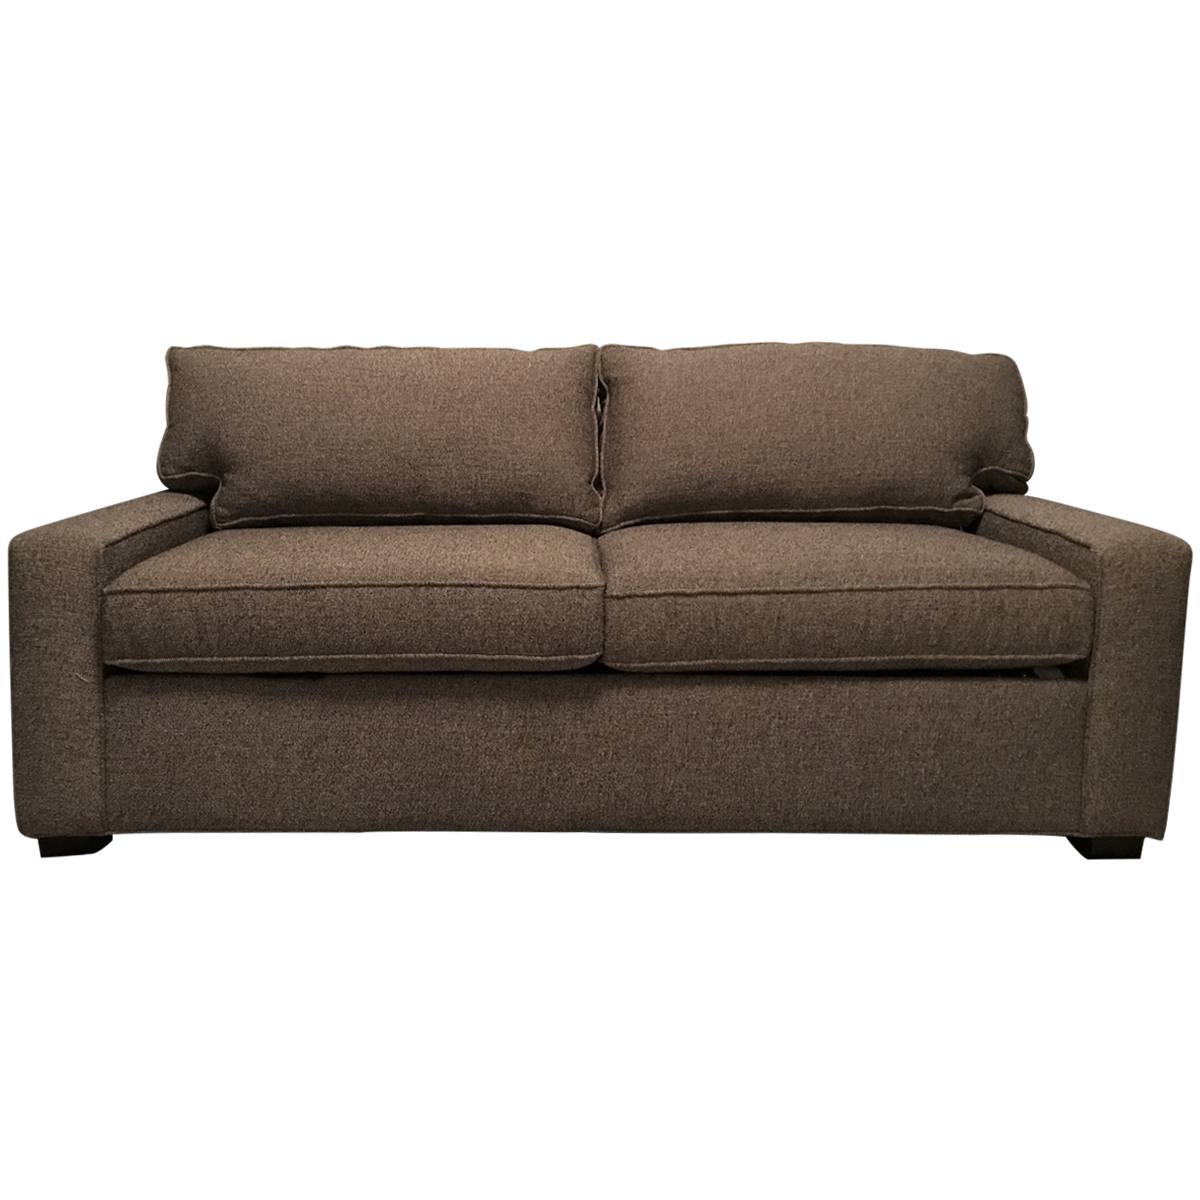 Alex Super Luxe Tweed Sleeper Sofa